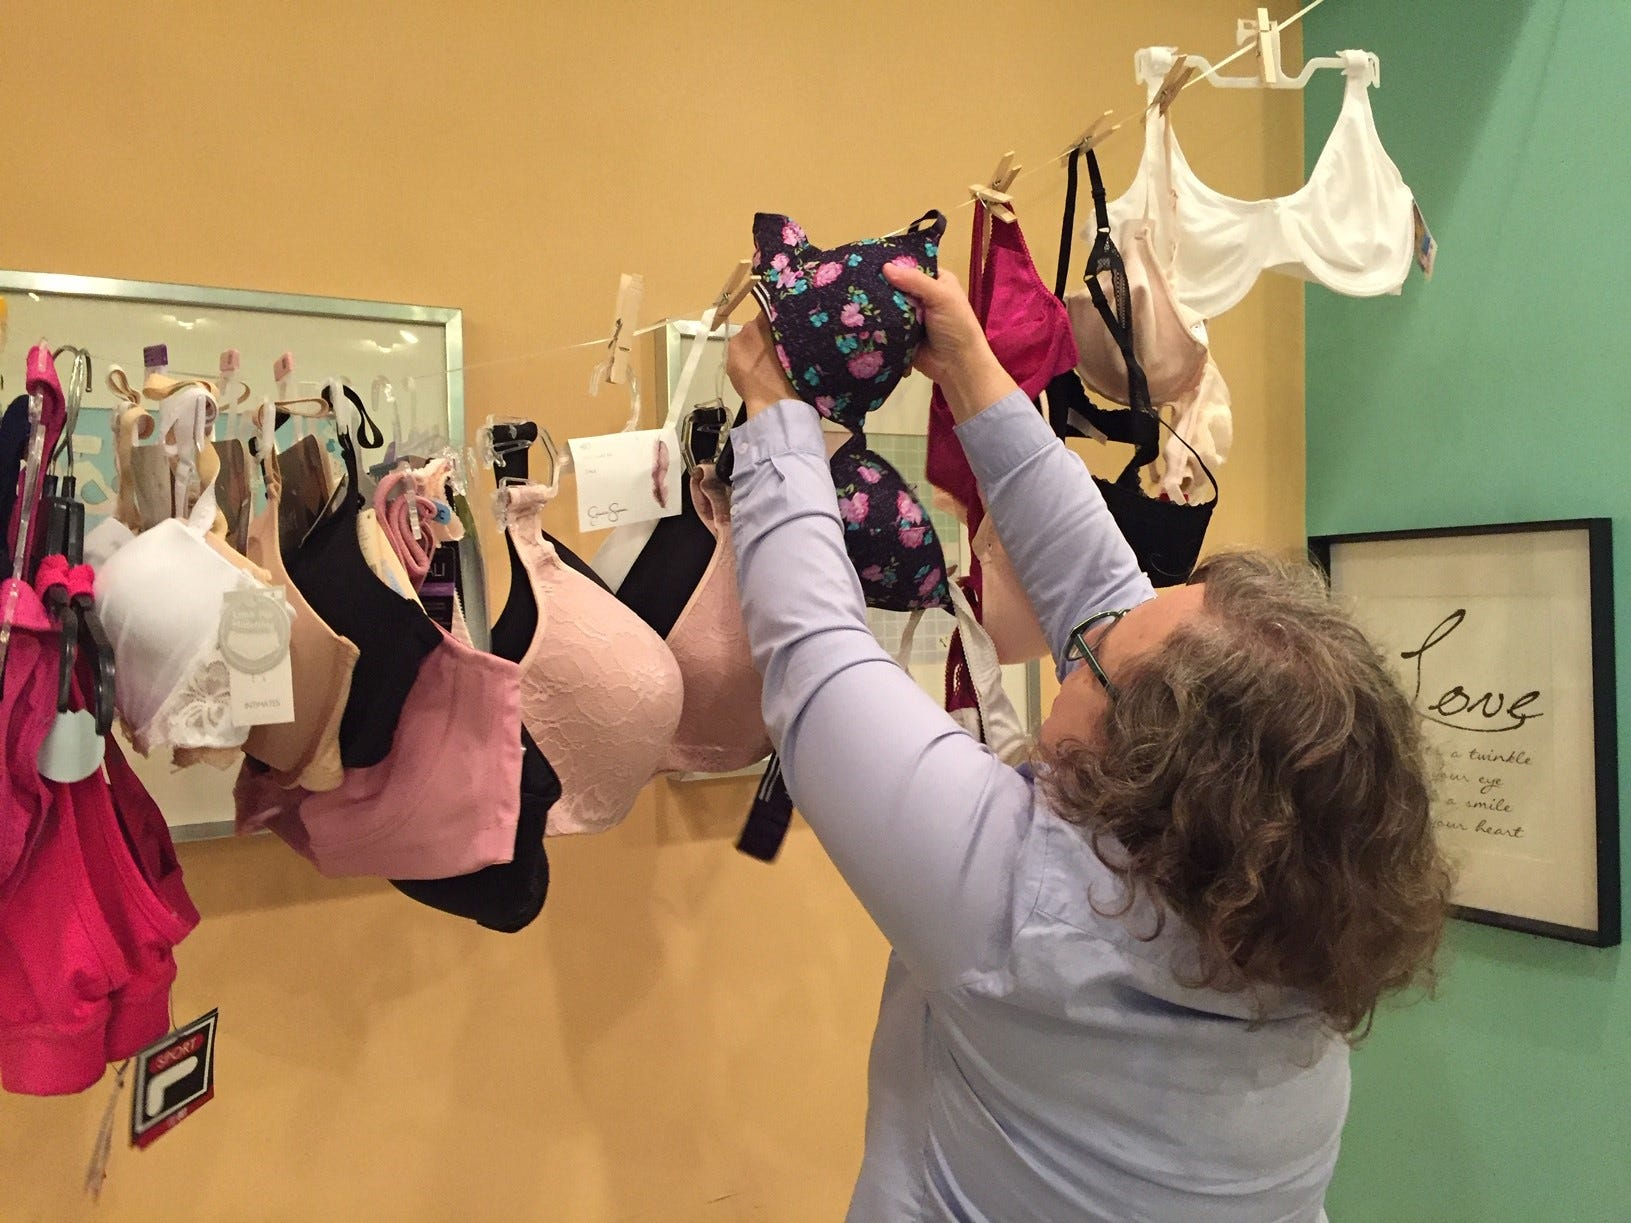 Bras donated at the Galentine's Celebration at the Pop Shop in Collingswood are strung up by Courier-Post reporter Kim Mulford. Bras are donated to Distributing Dignity for women in need.